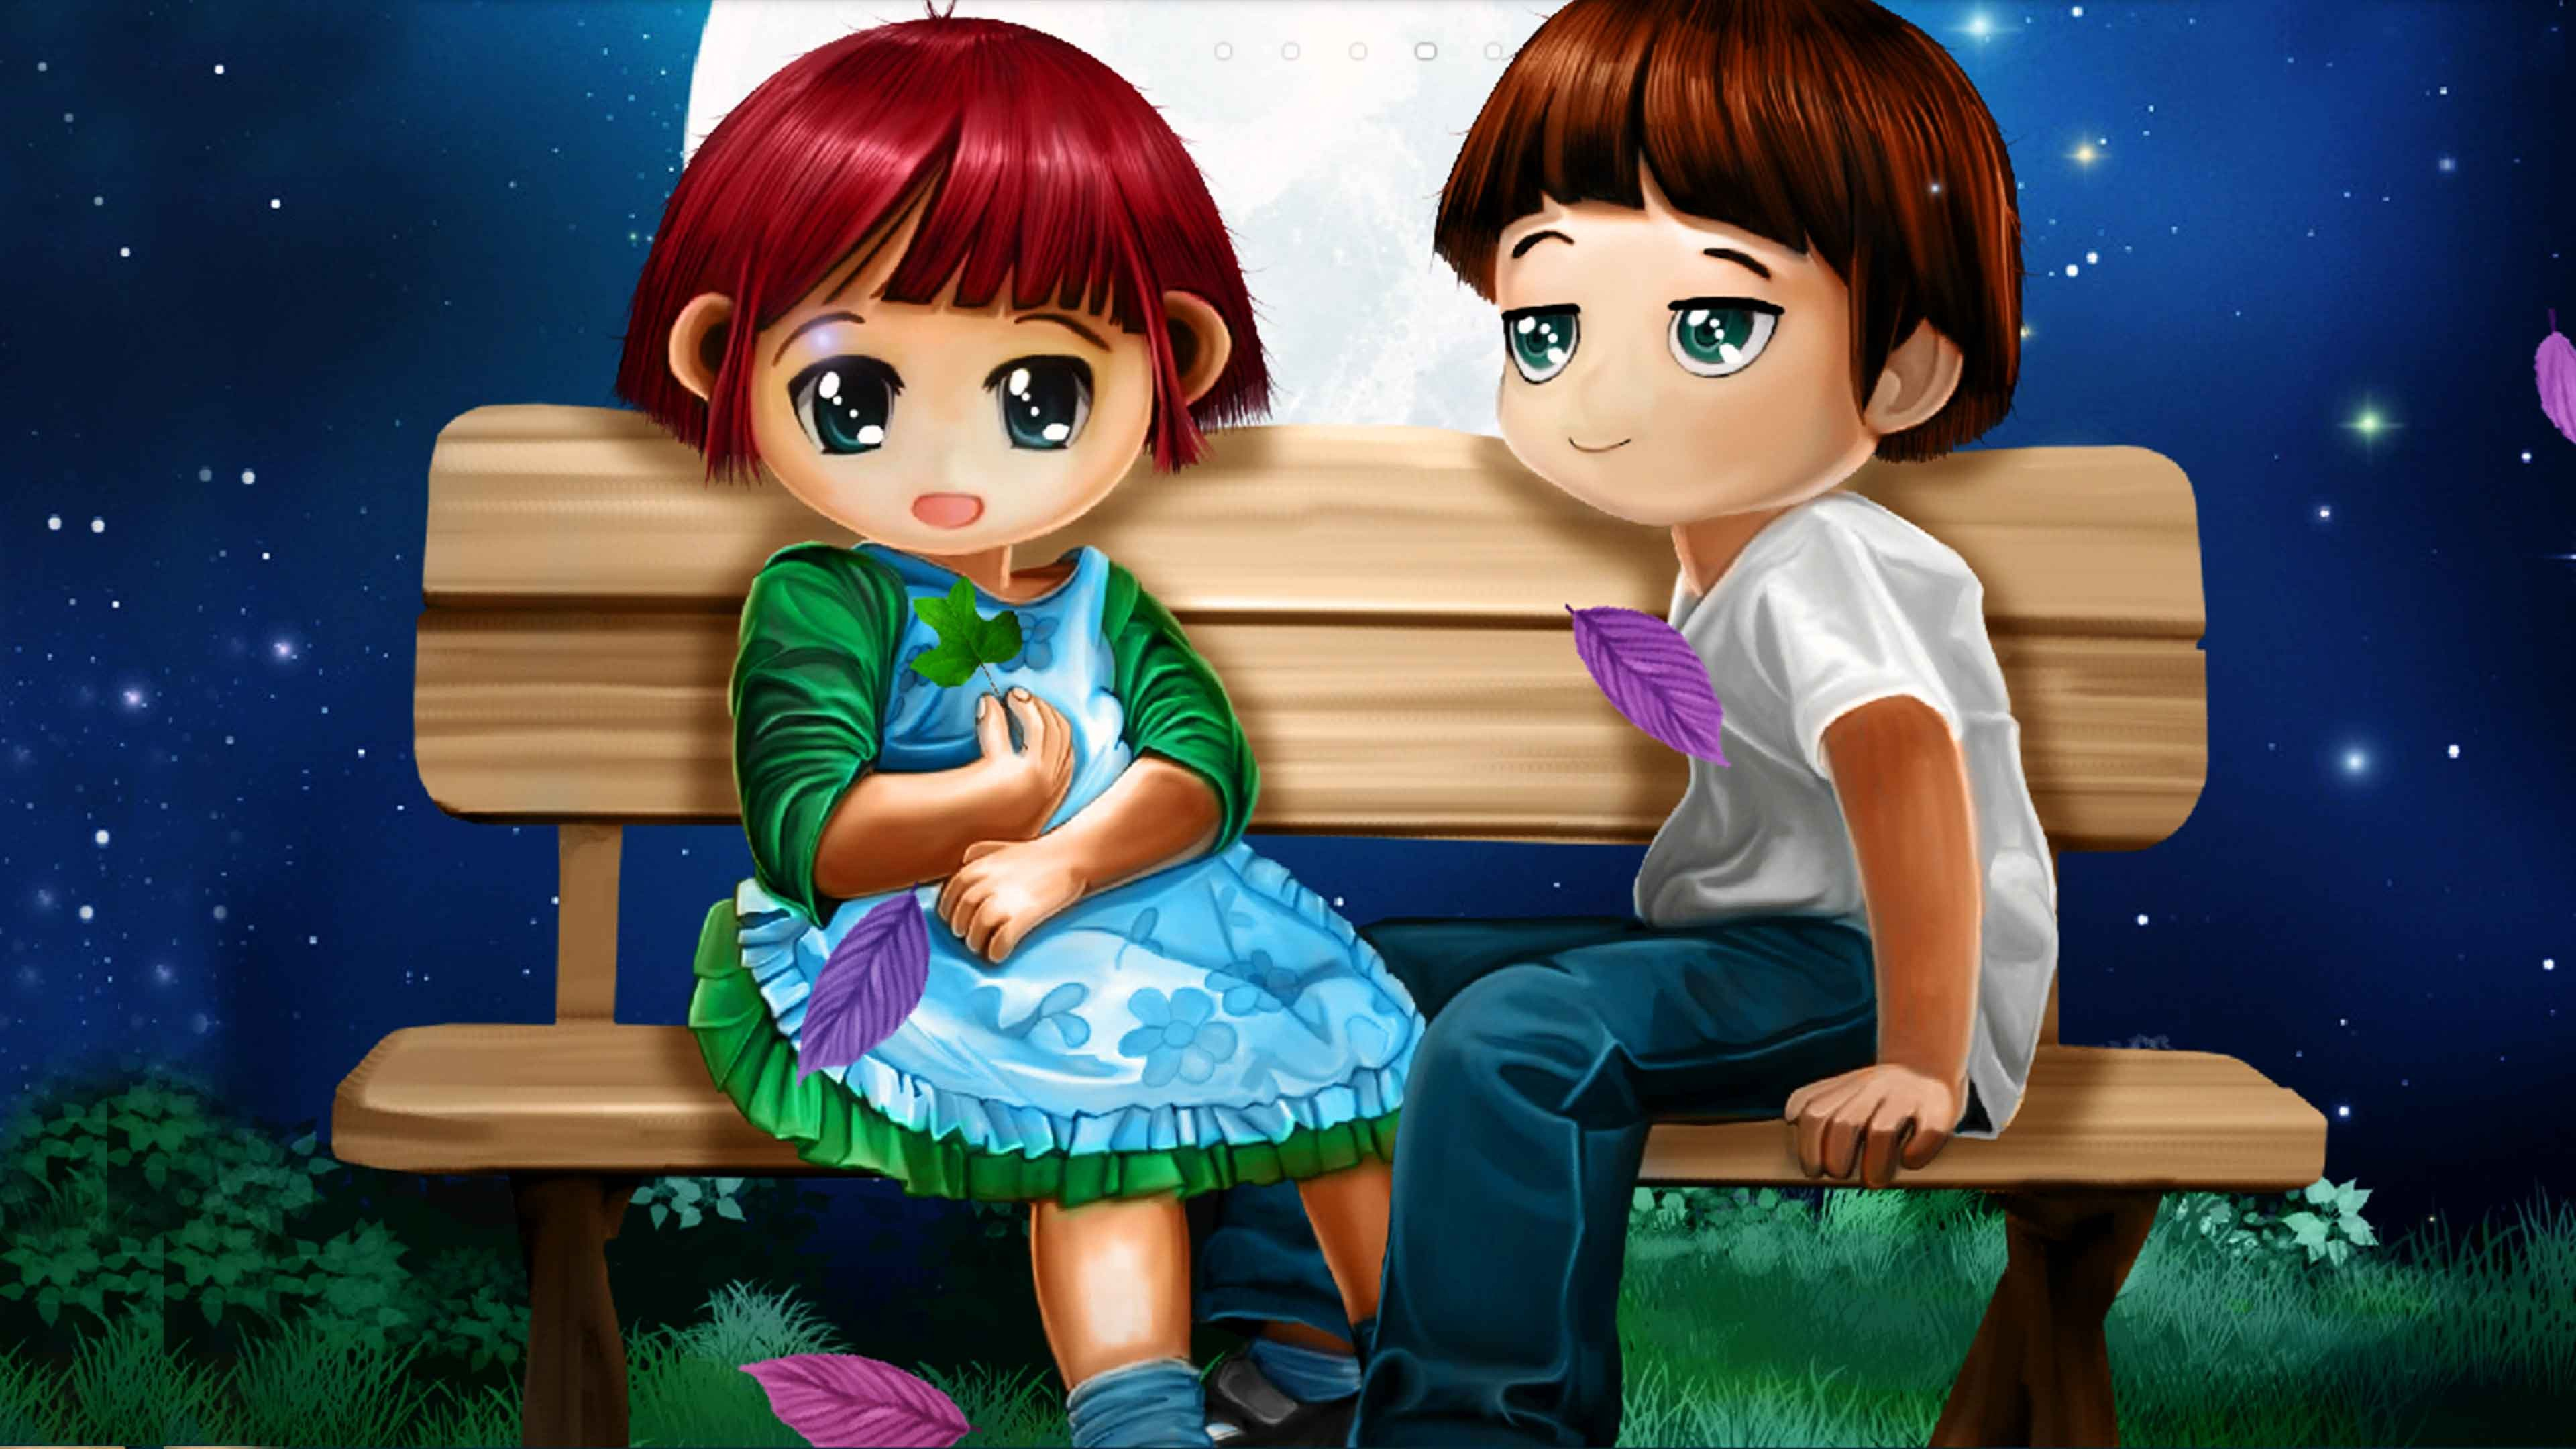 Cartoon wallpaper download free amazing backgrounds for - Couple wallpaper download ...